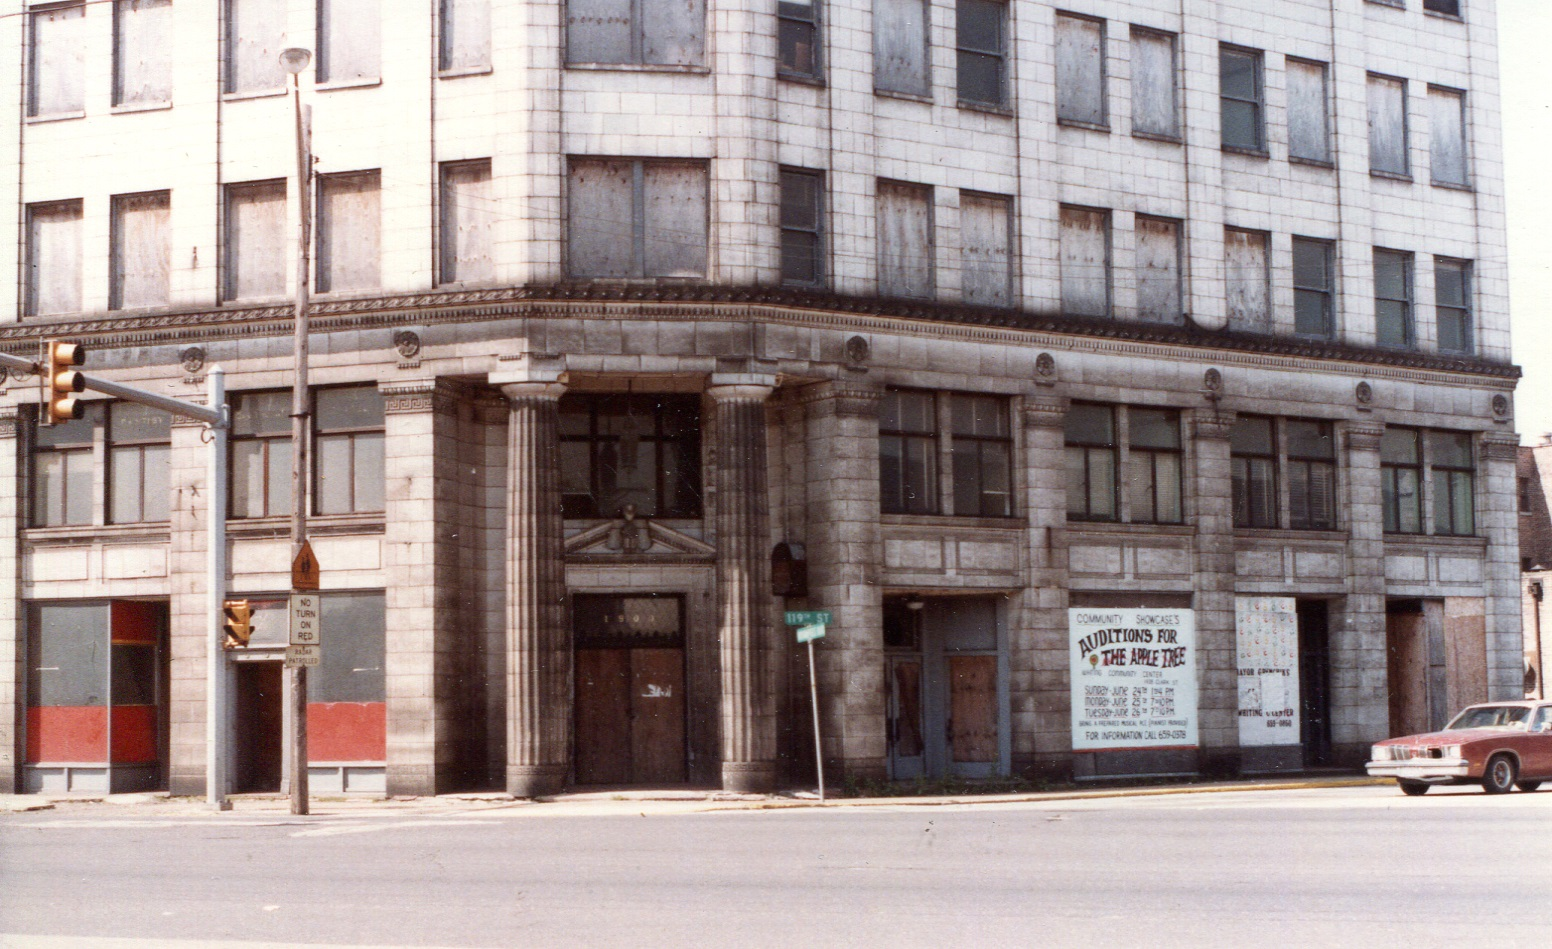 After all the businesses moved out, the once grand Central State Bank Building became an eyesore on the southwest corner of Indianapolis Boulevard and 119th Street, with its windows boarded up.